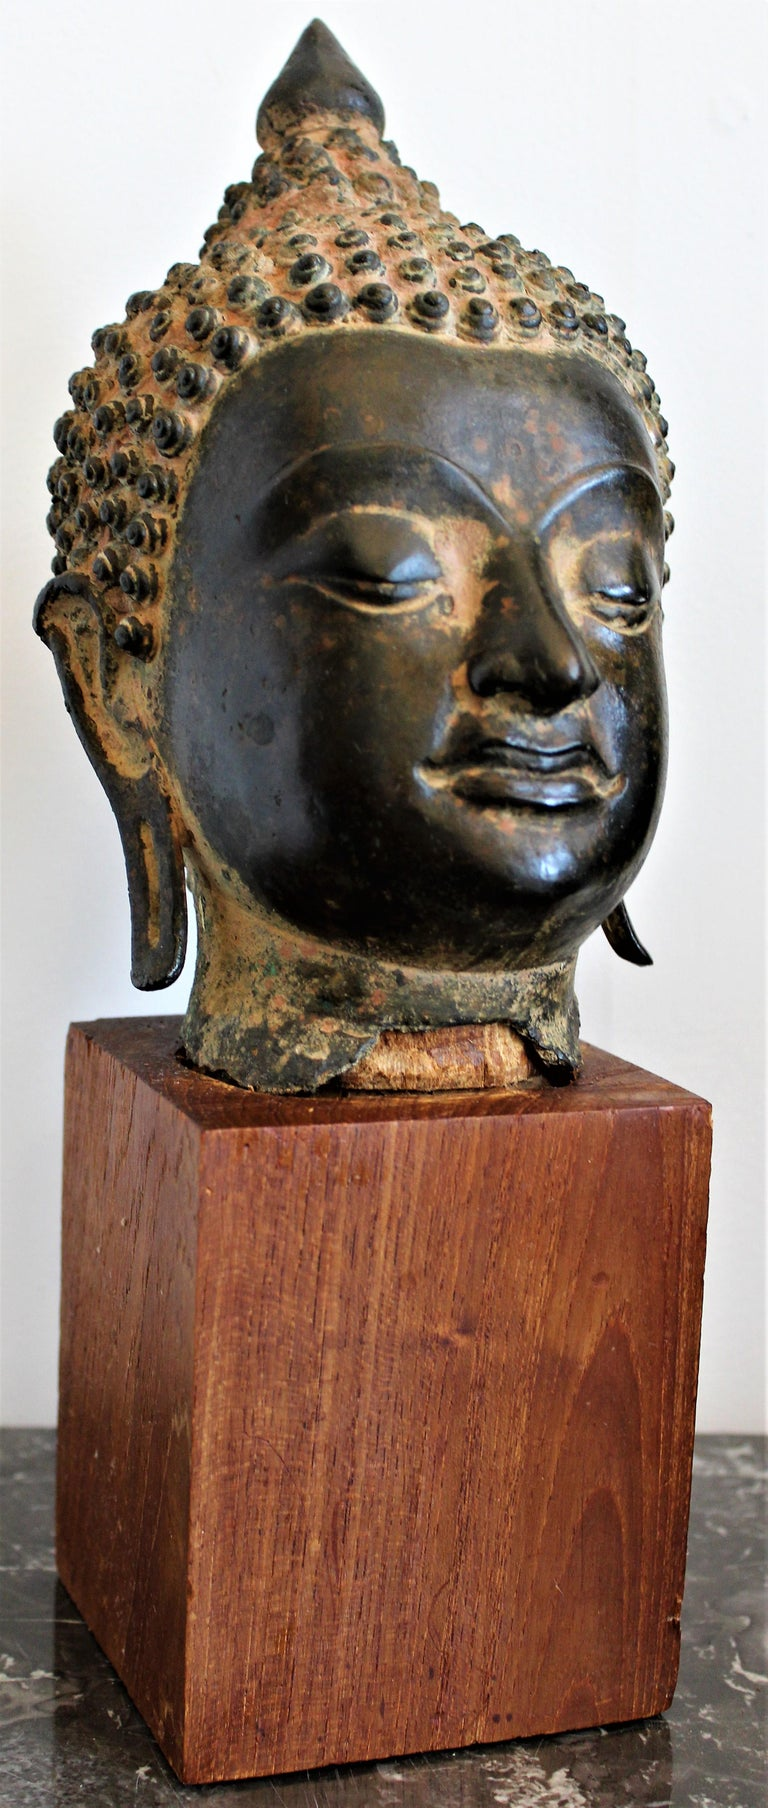 Antique Asian and extremely detailed cast bronze fragment of the head of Buddha, dating from the 18 century and presumably having Thai or Tibetan origins. The sculpture fragment is securely presented on a simple teak block.  The bronze head on its